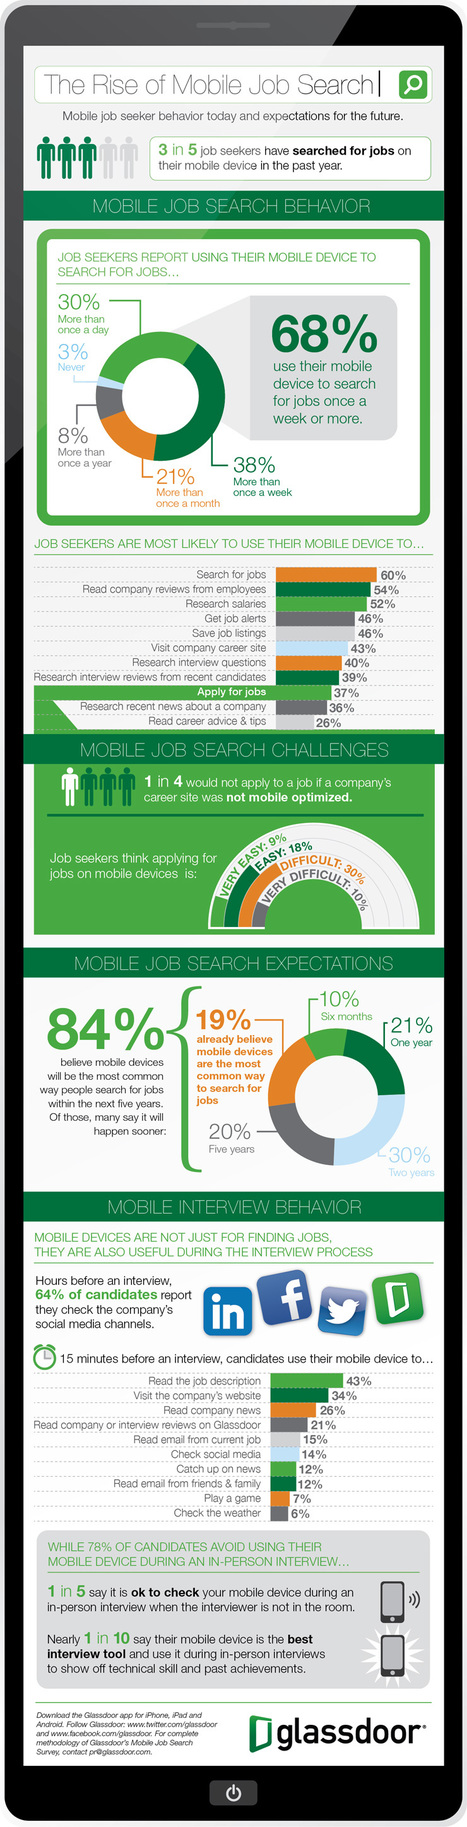 The Rise Of Mobile Job Search – infographic /@BerriePelser | social media | Scoop.it